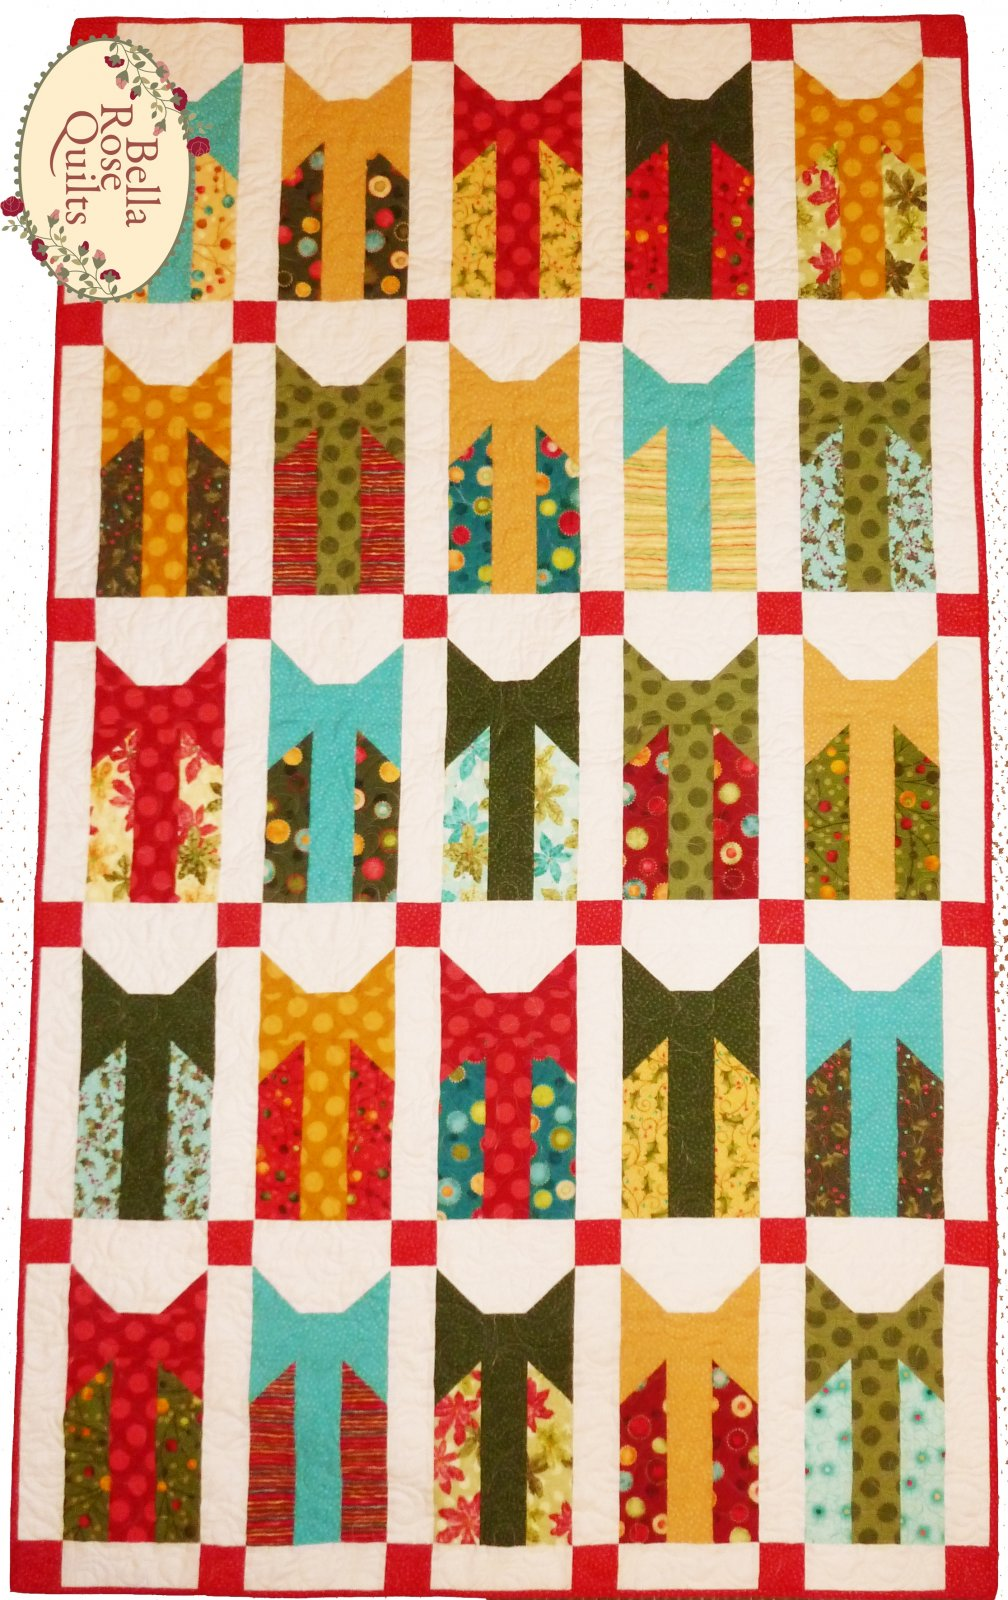 It's A Wrap Quilt Kit by Pieces From My Heart